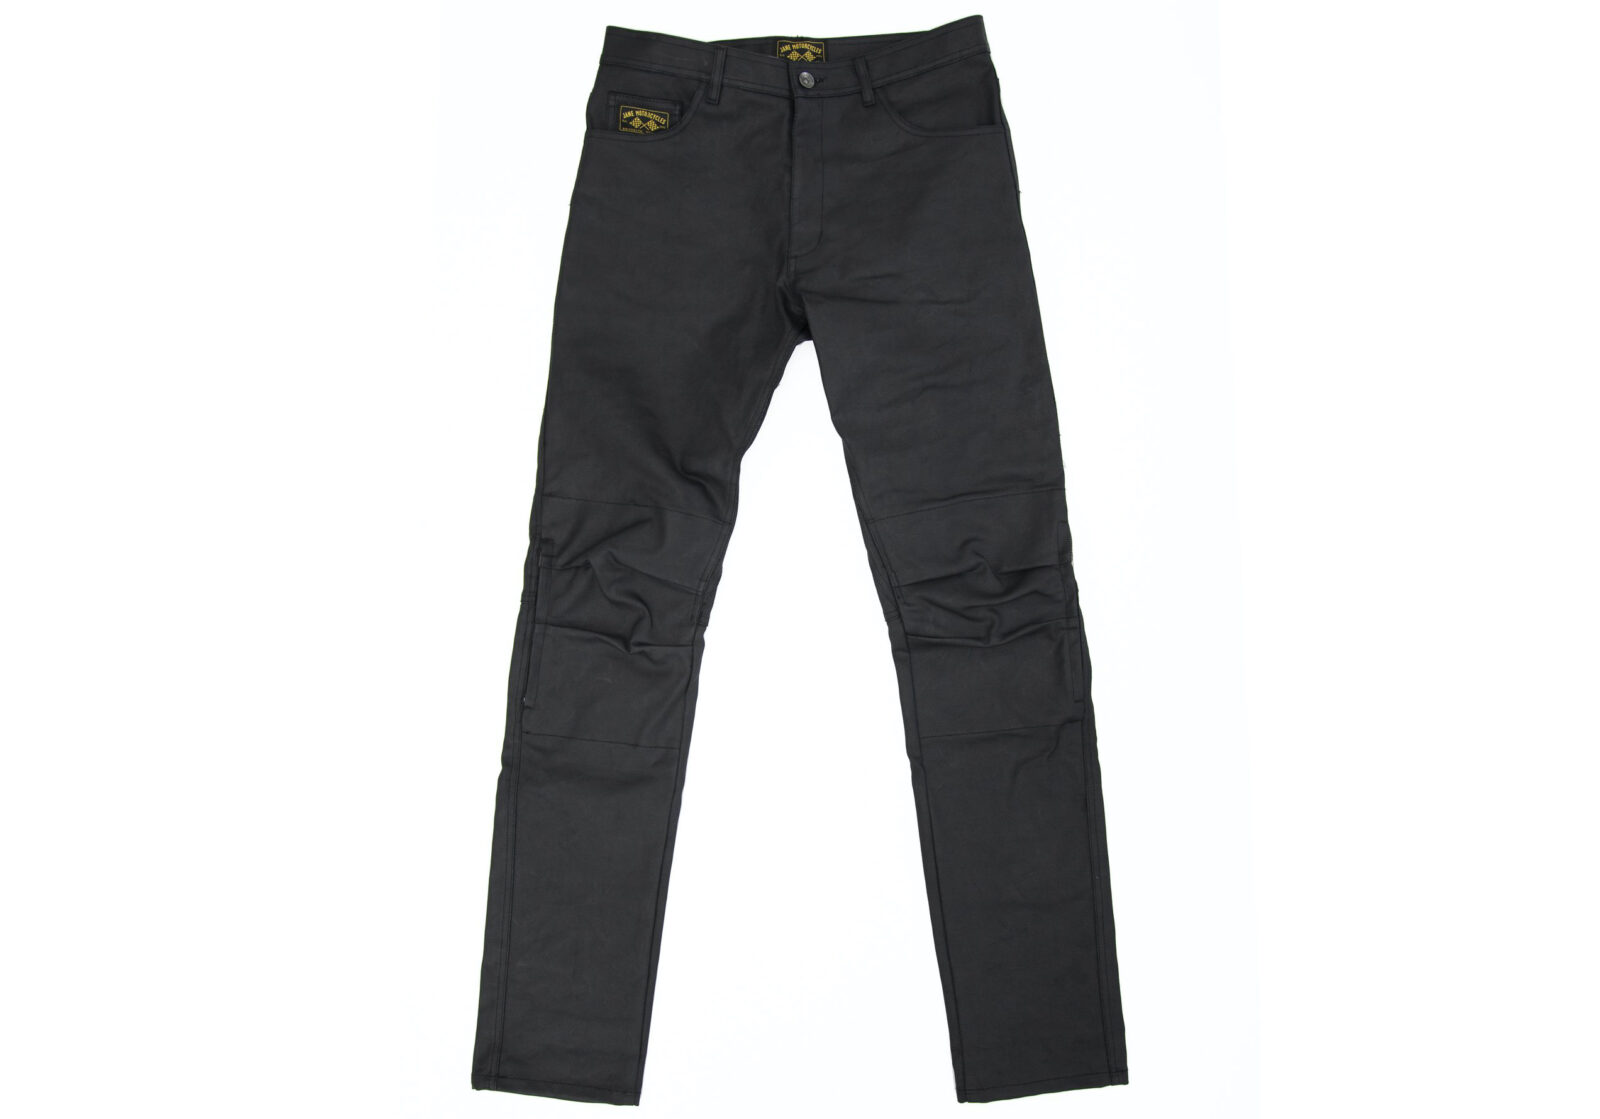 Norman Armalith Riding Pants By Jane Motorcycles